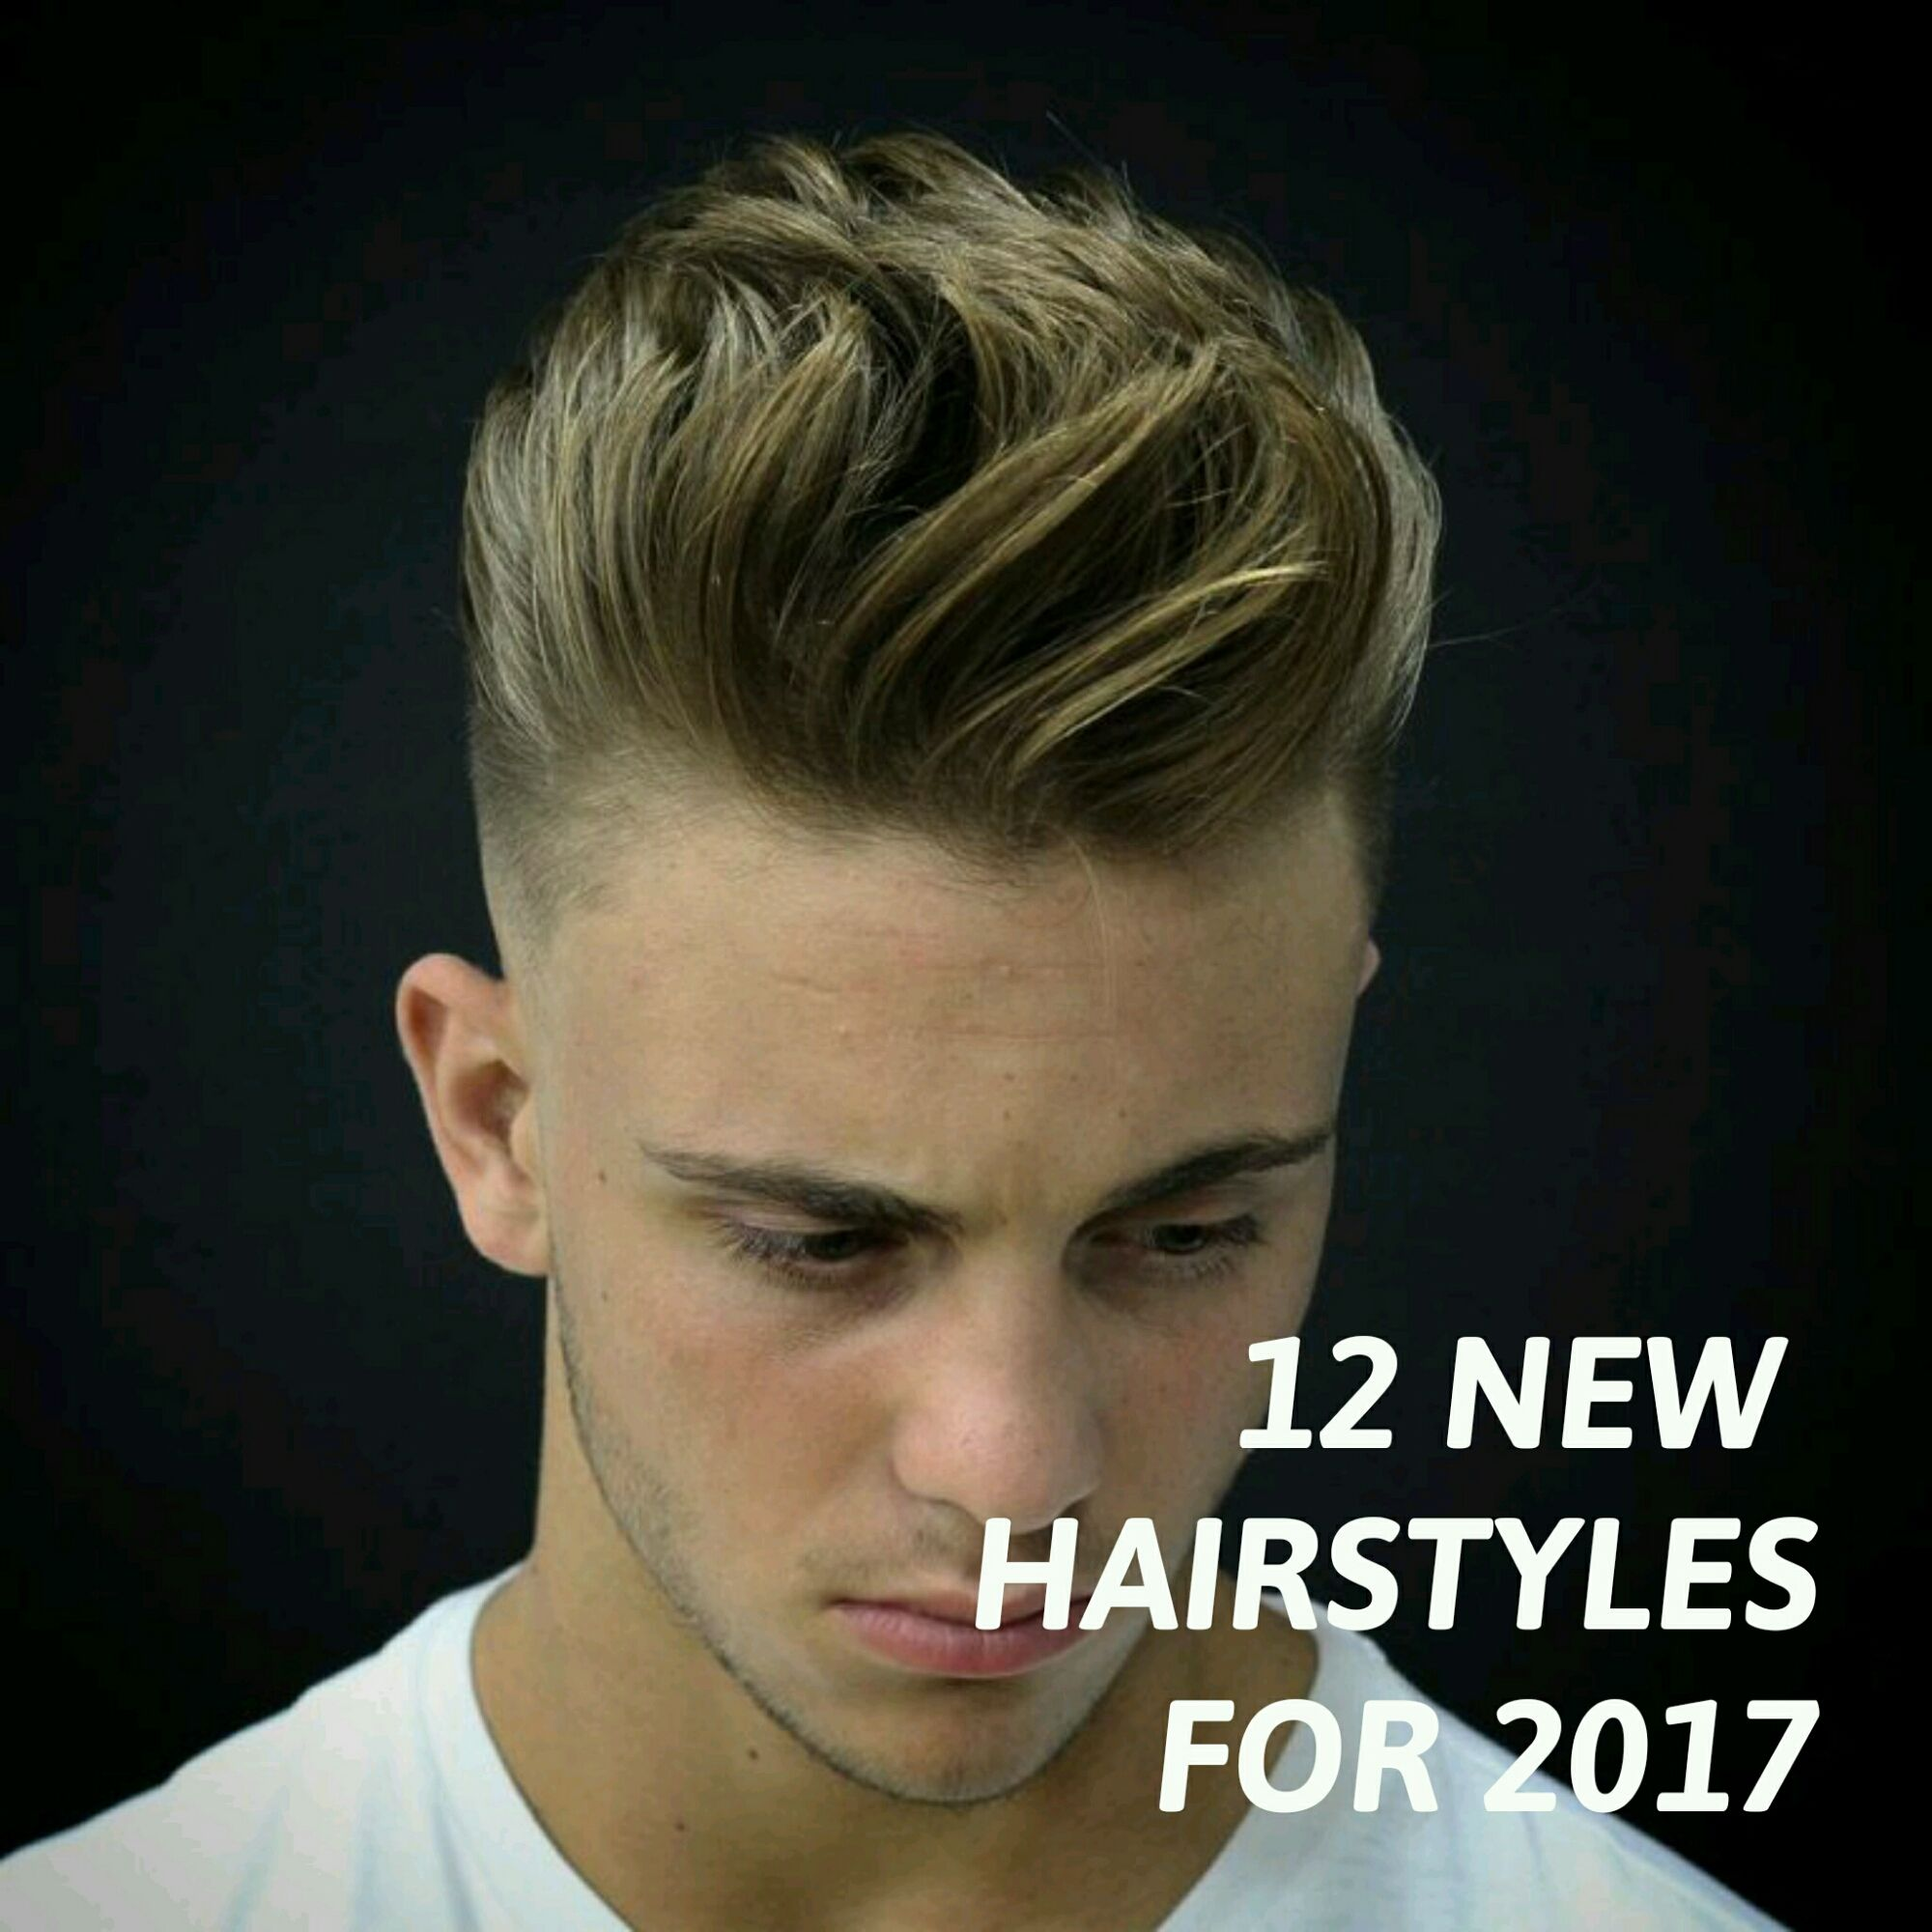 12 New Mens Hairstyles Haircuts For 2017 Pinterest Hairstyles